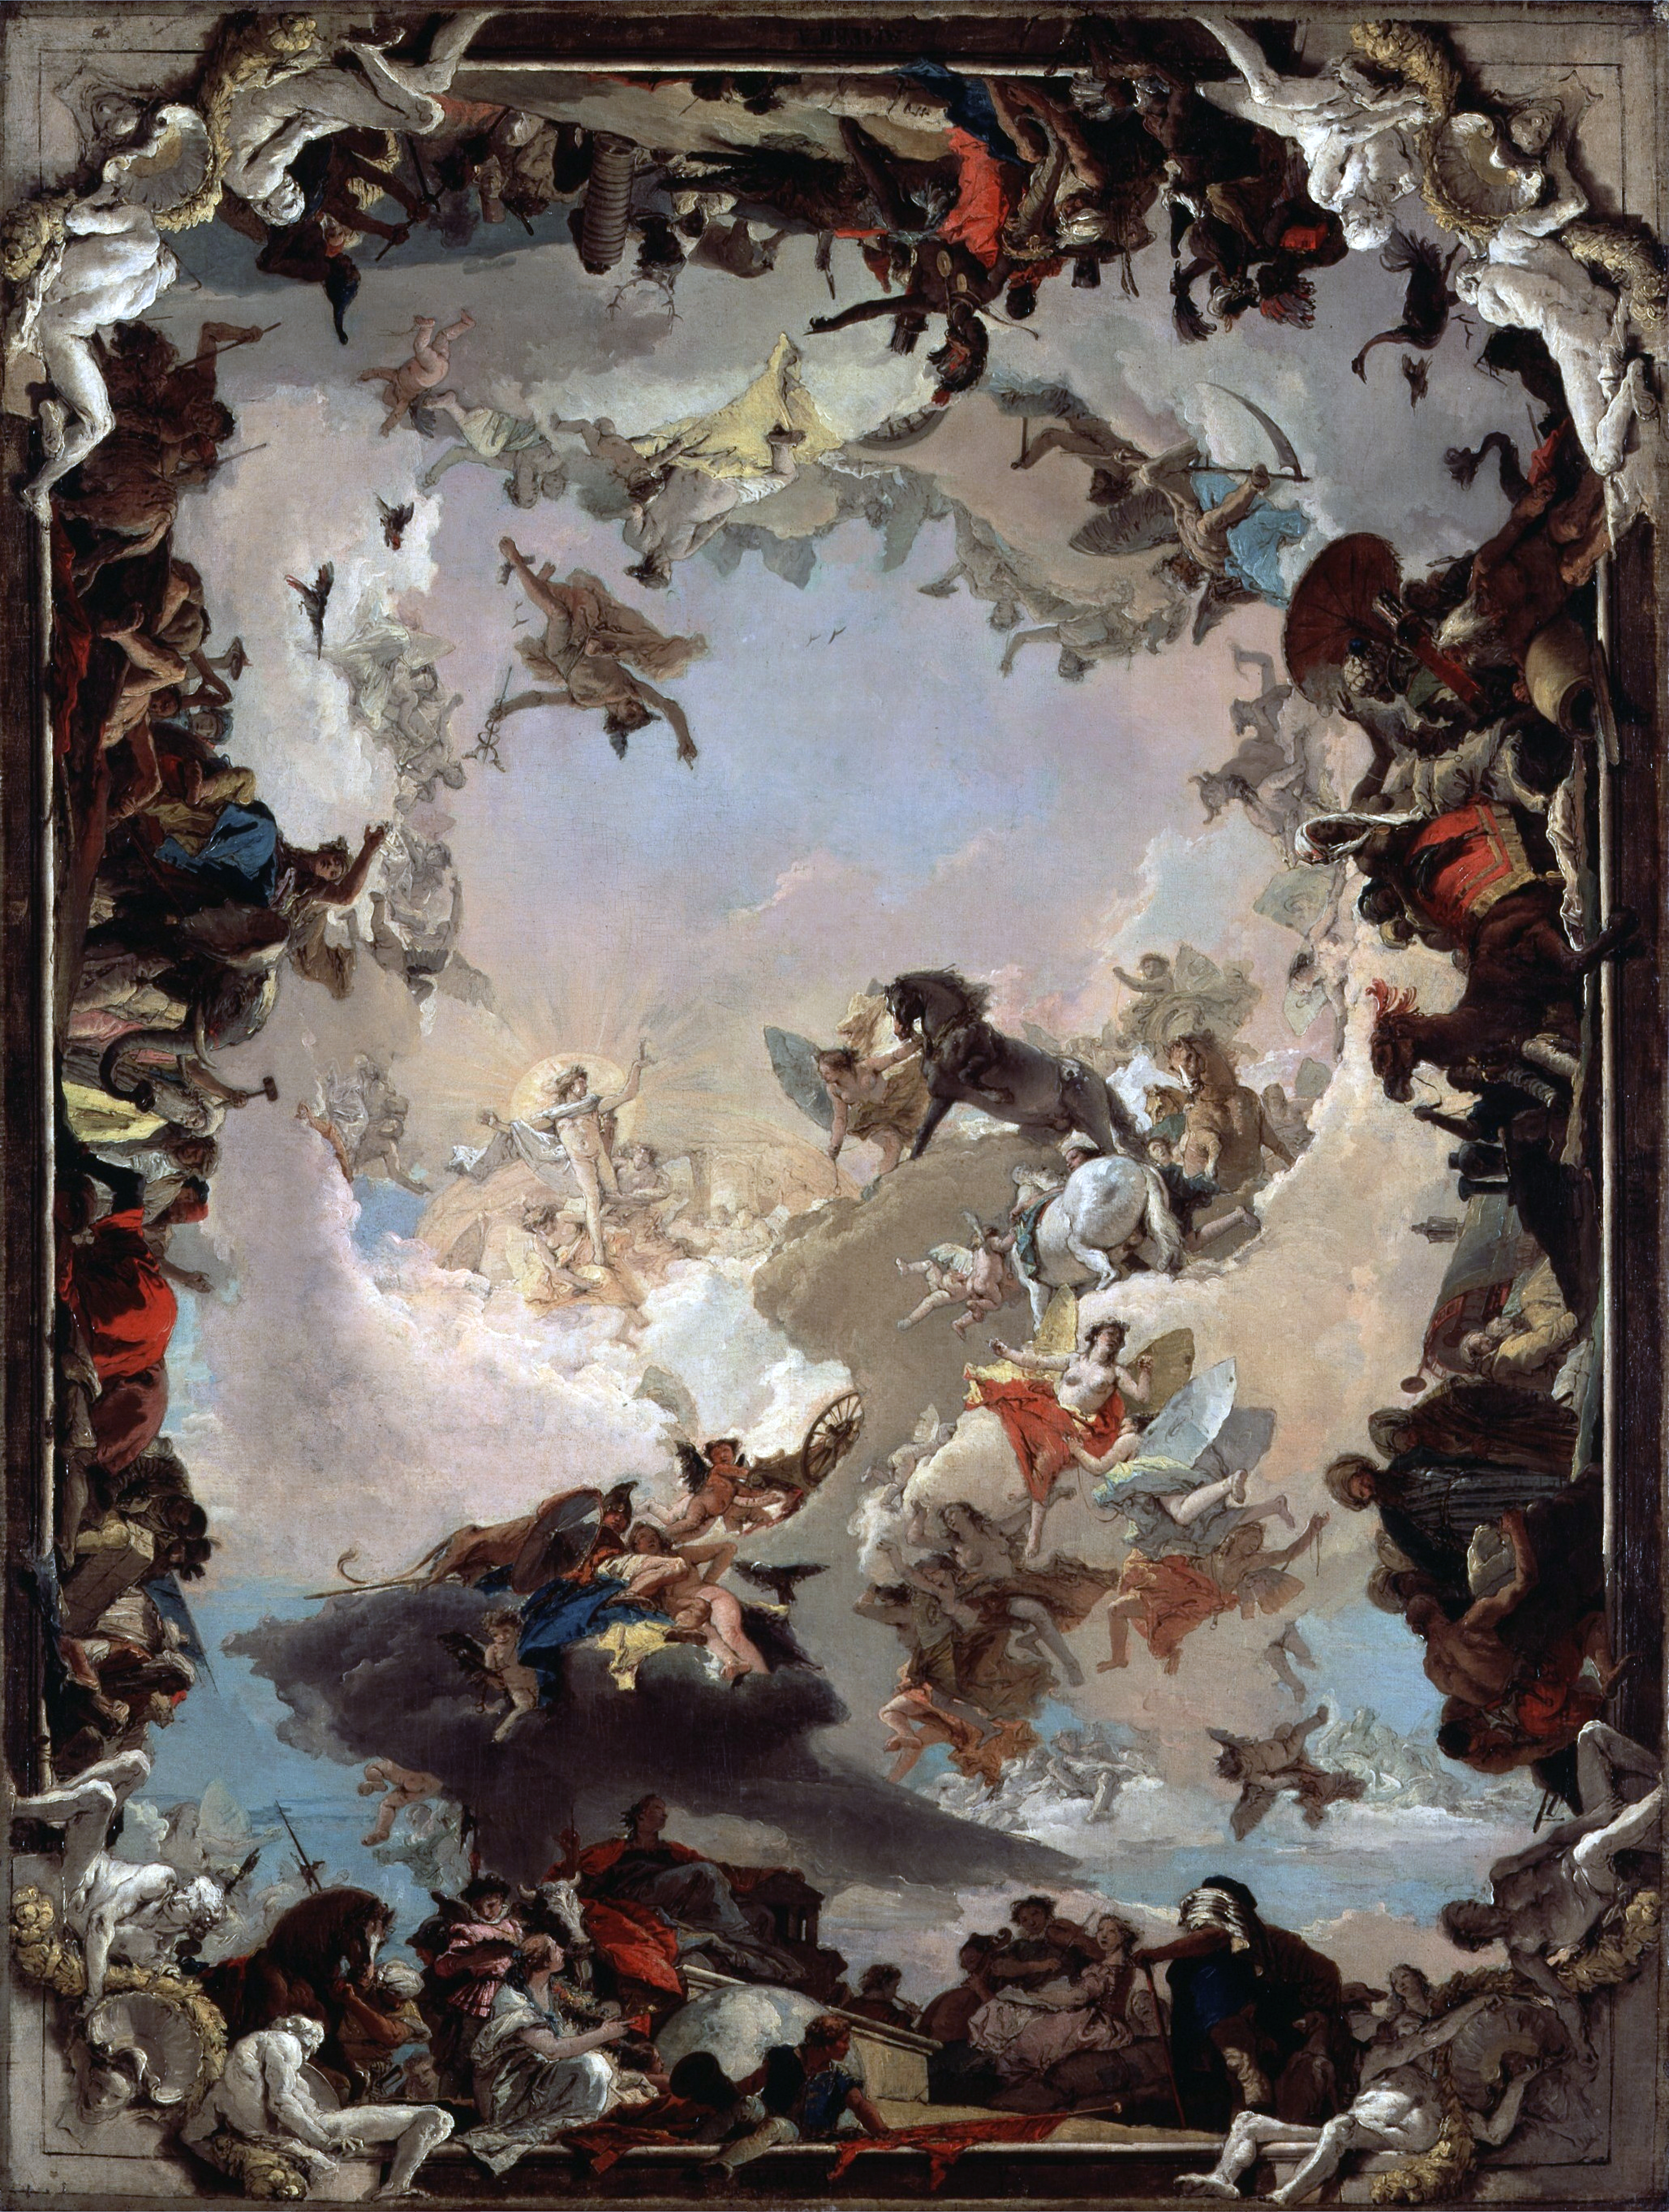 http://upload.wikimedia.org/wikipedia/commons/3/34/Giovanni_Battista_Tiepolo_-_Allegory_of_the_Planets_and_Continents.jpg